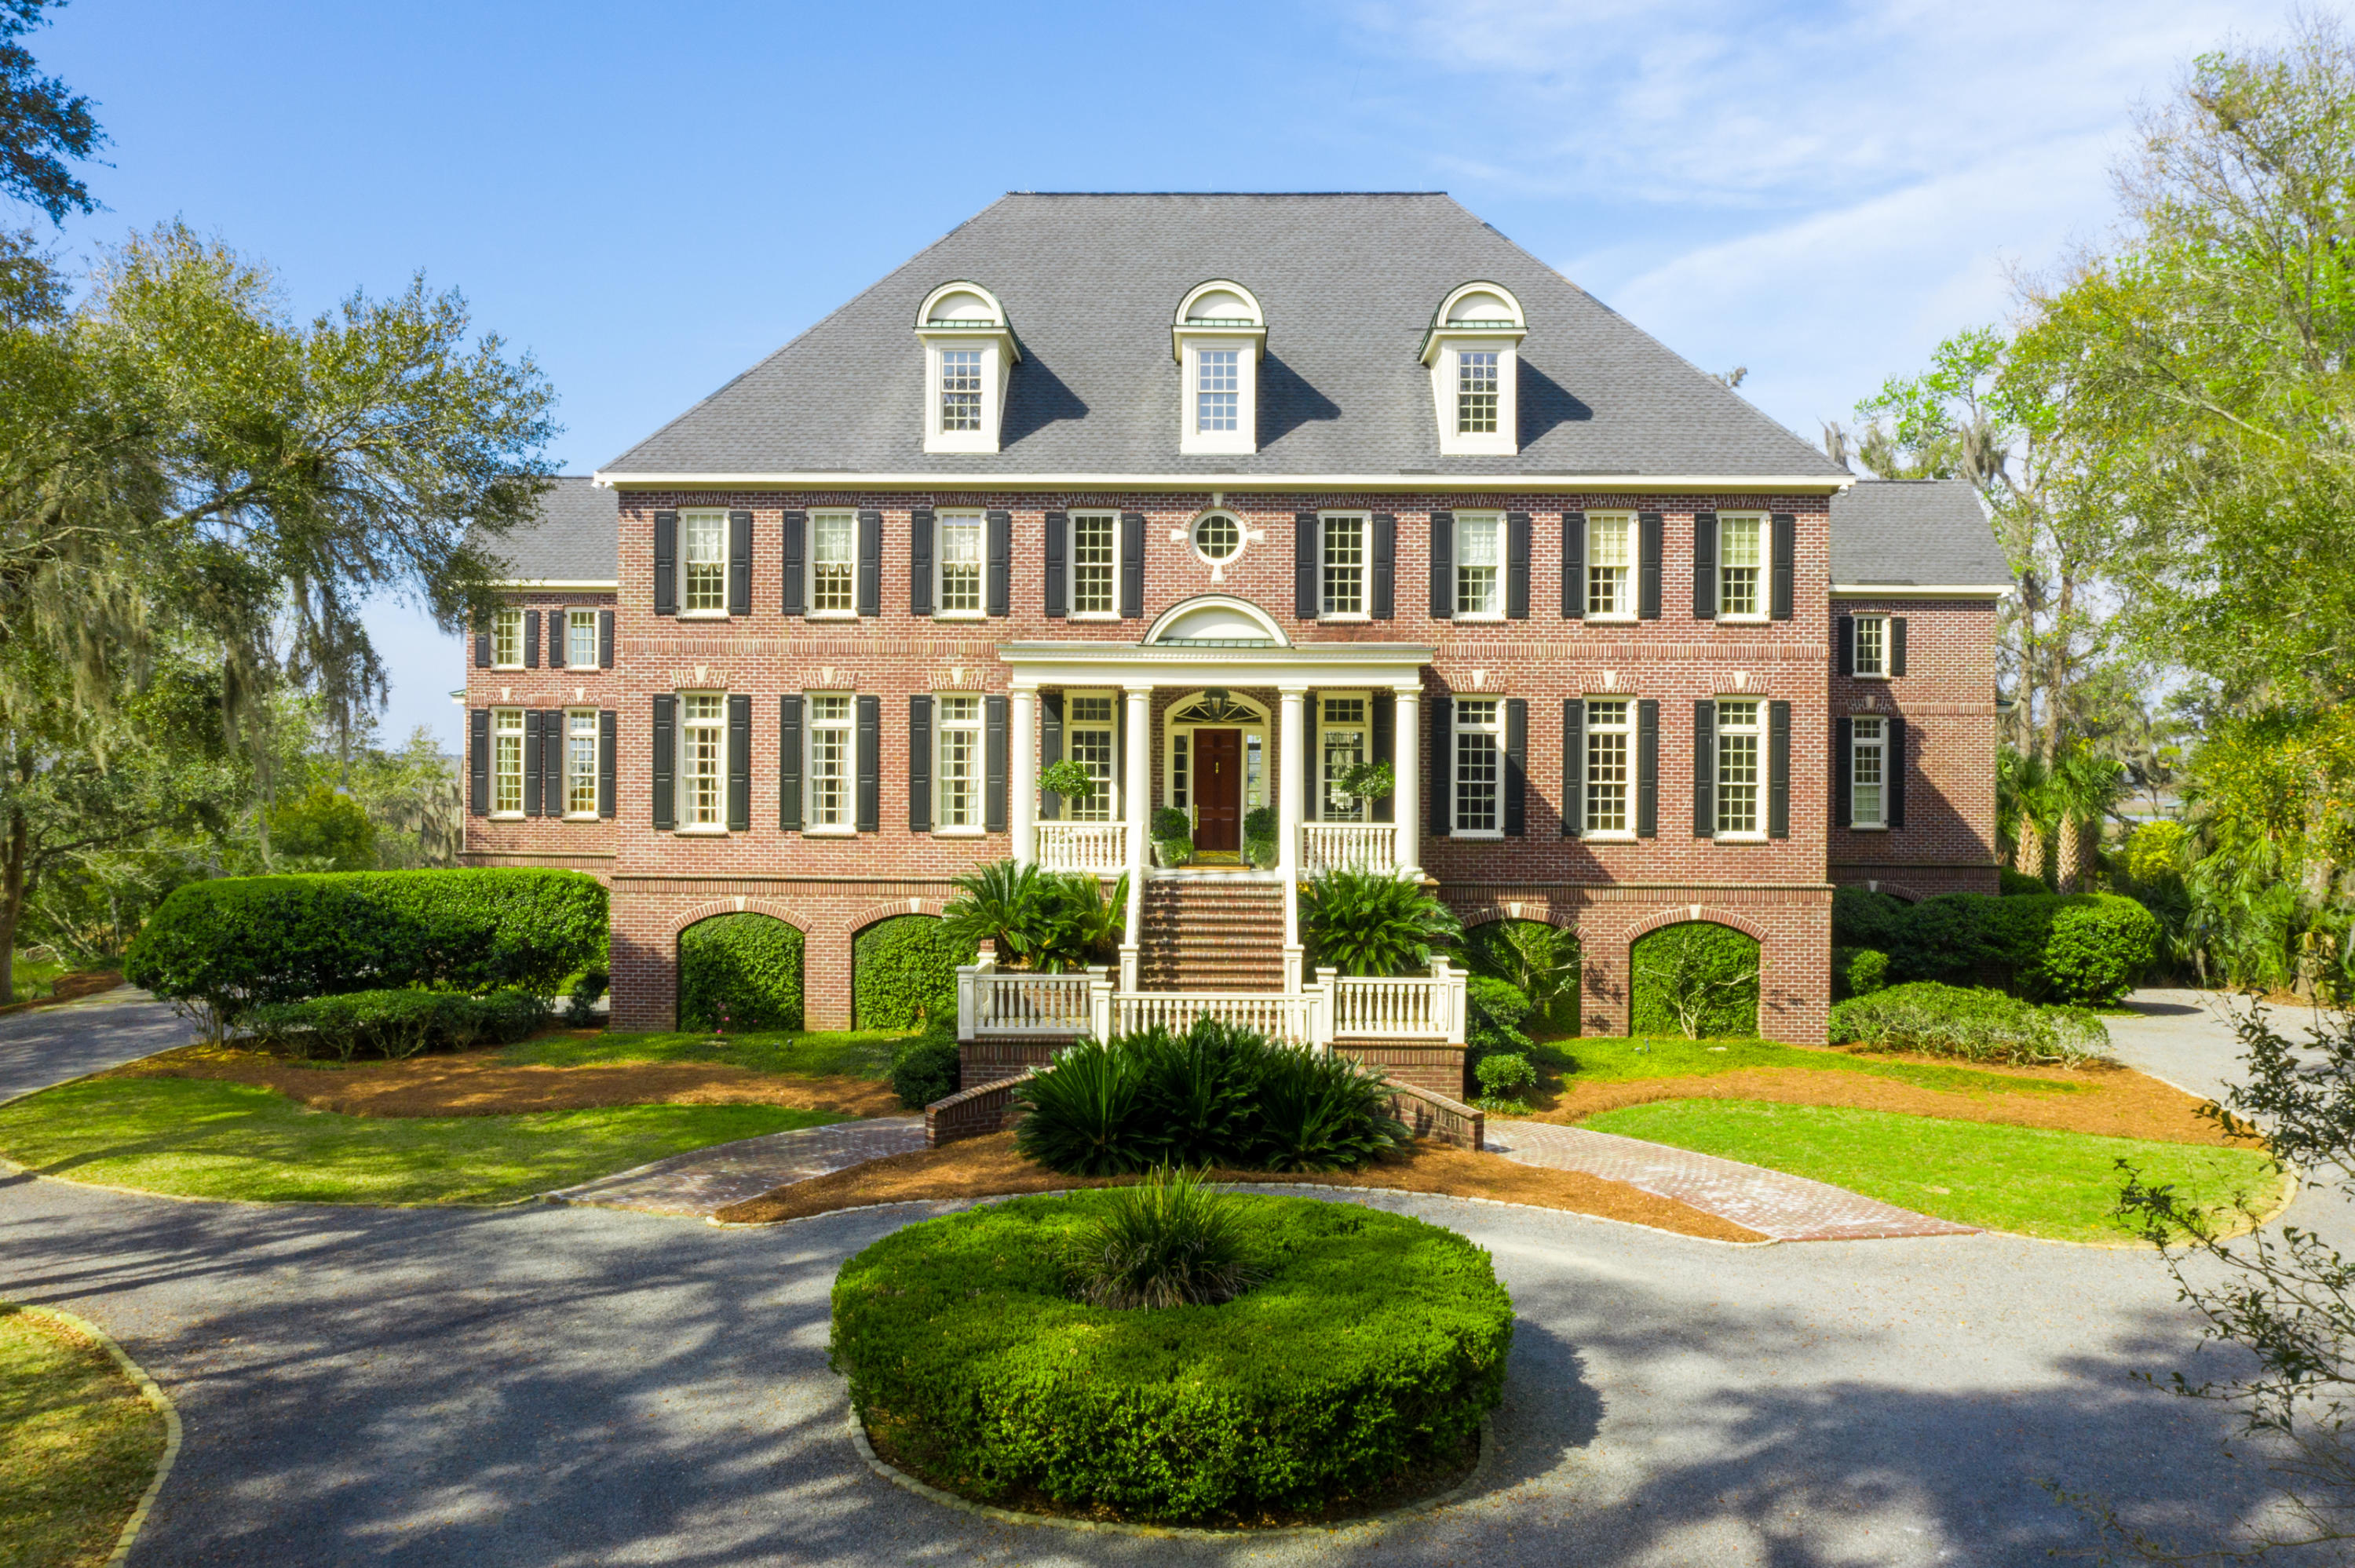 Ravens Bluff Homes For Sale - 5150 Chisolm, Johns Island, SC - 50